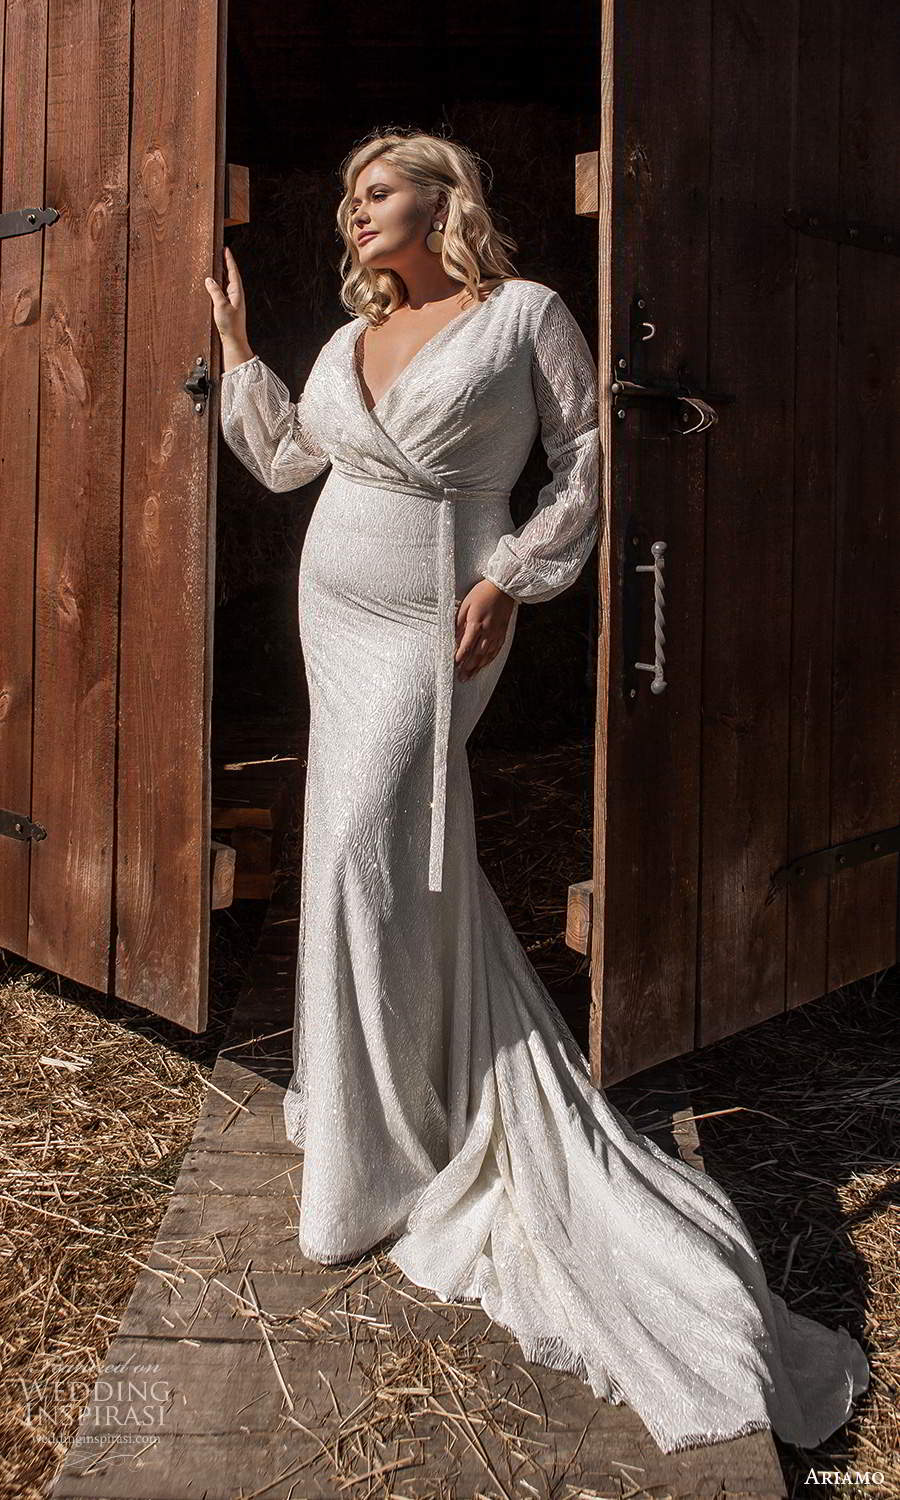 ariamo 2021 plus bridal bishop sleeves crossover v neckline embellished sheath wedding dress chapel train (13) mv